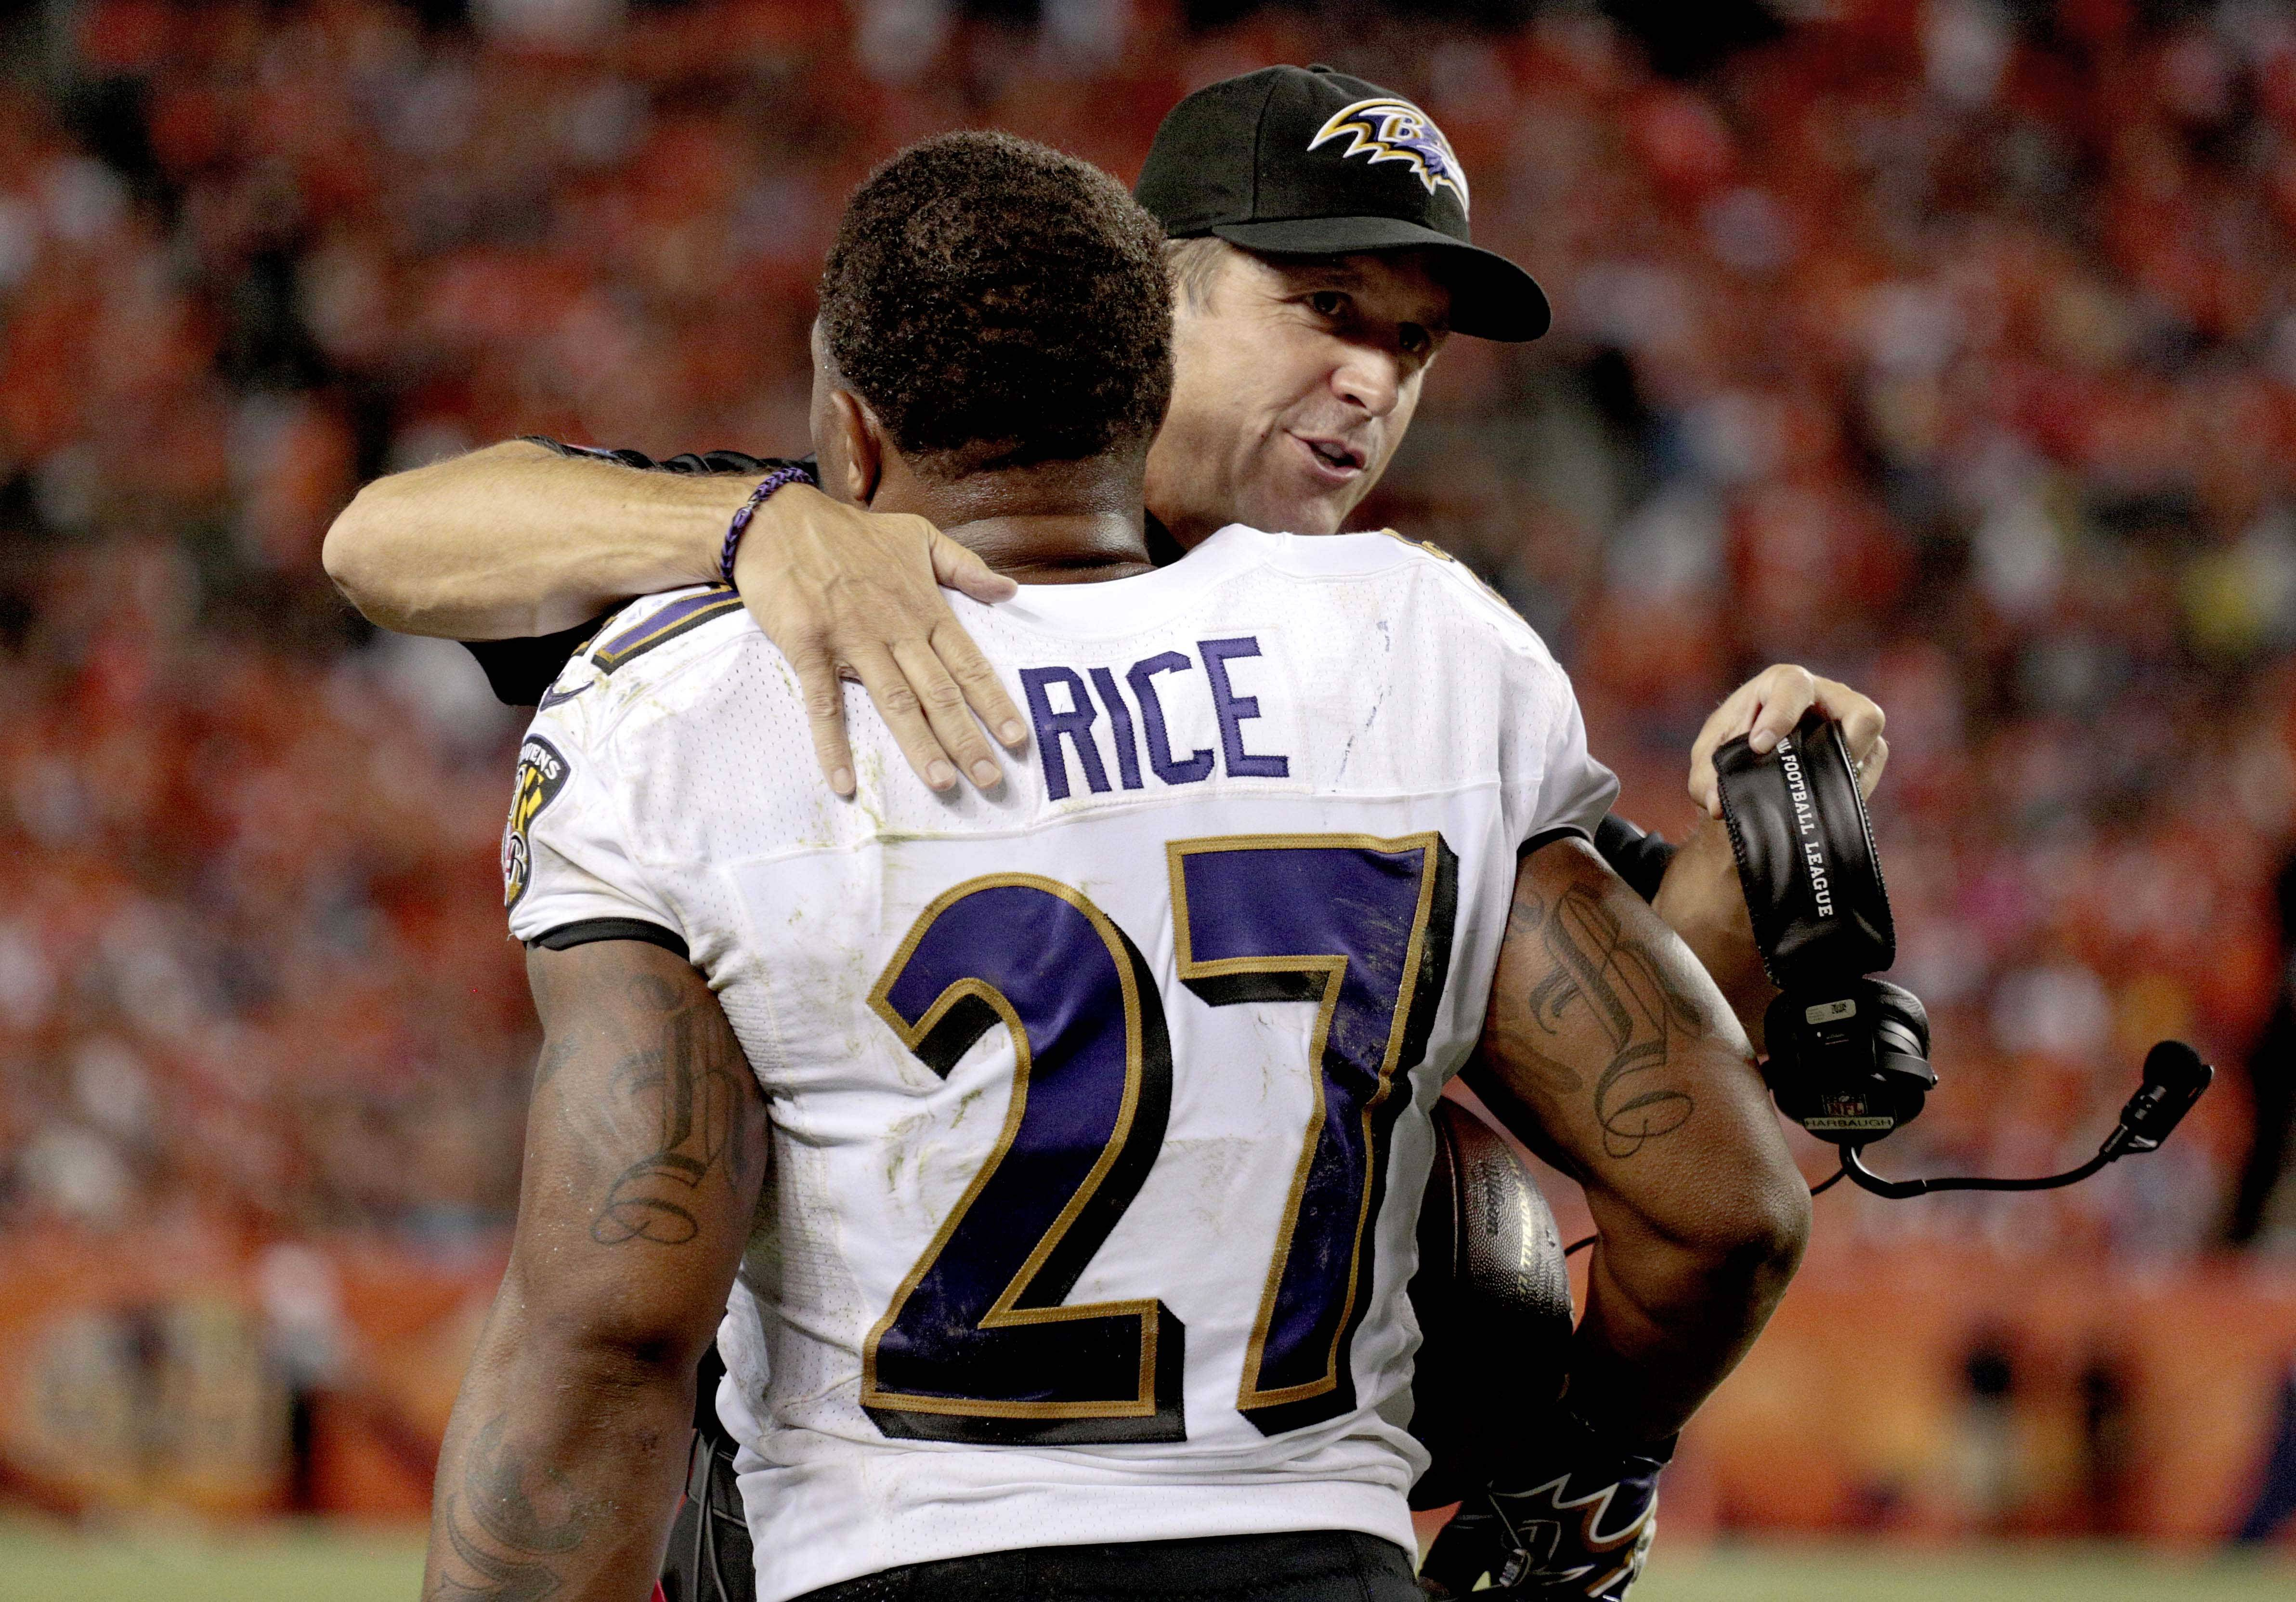 Baltimore Ravens head coach John Harbaugh hugs Ray Rice (27) after Rice scored a touchdown against the Denver Broncos during the first half of an NFL football game, Thursday, Sept. 5, 2013, in Denver.